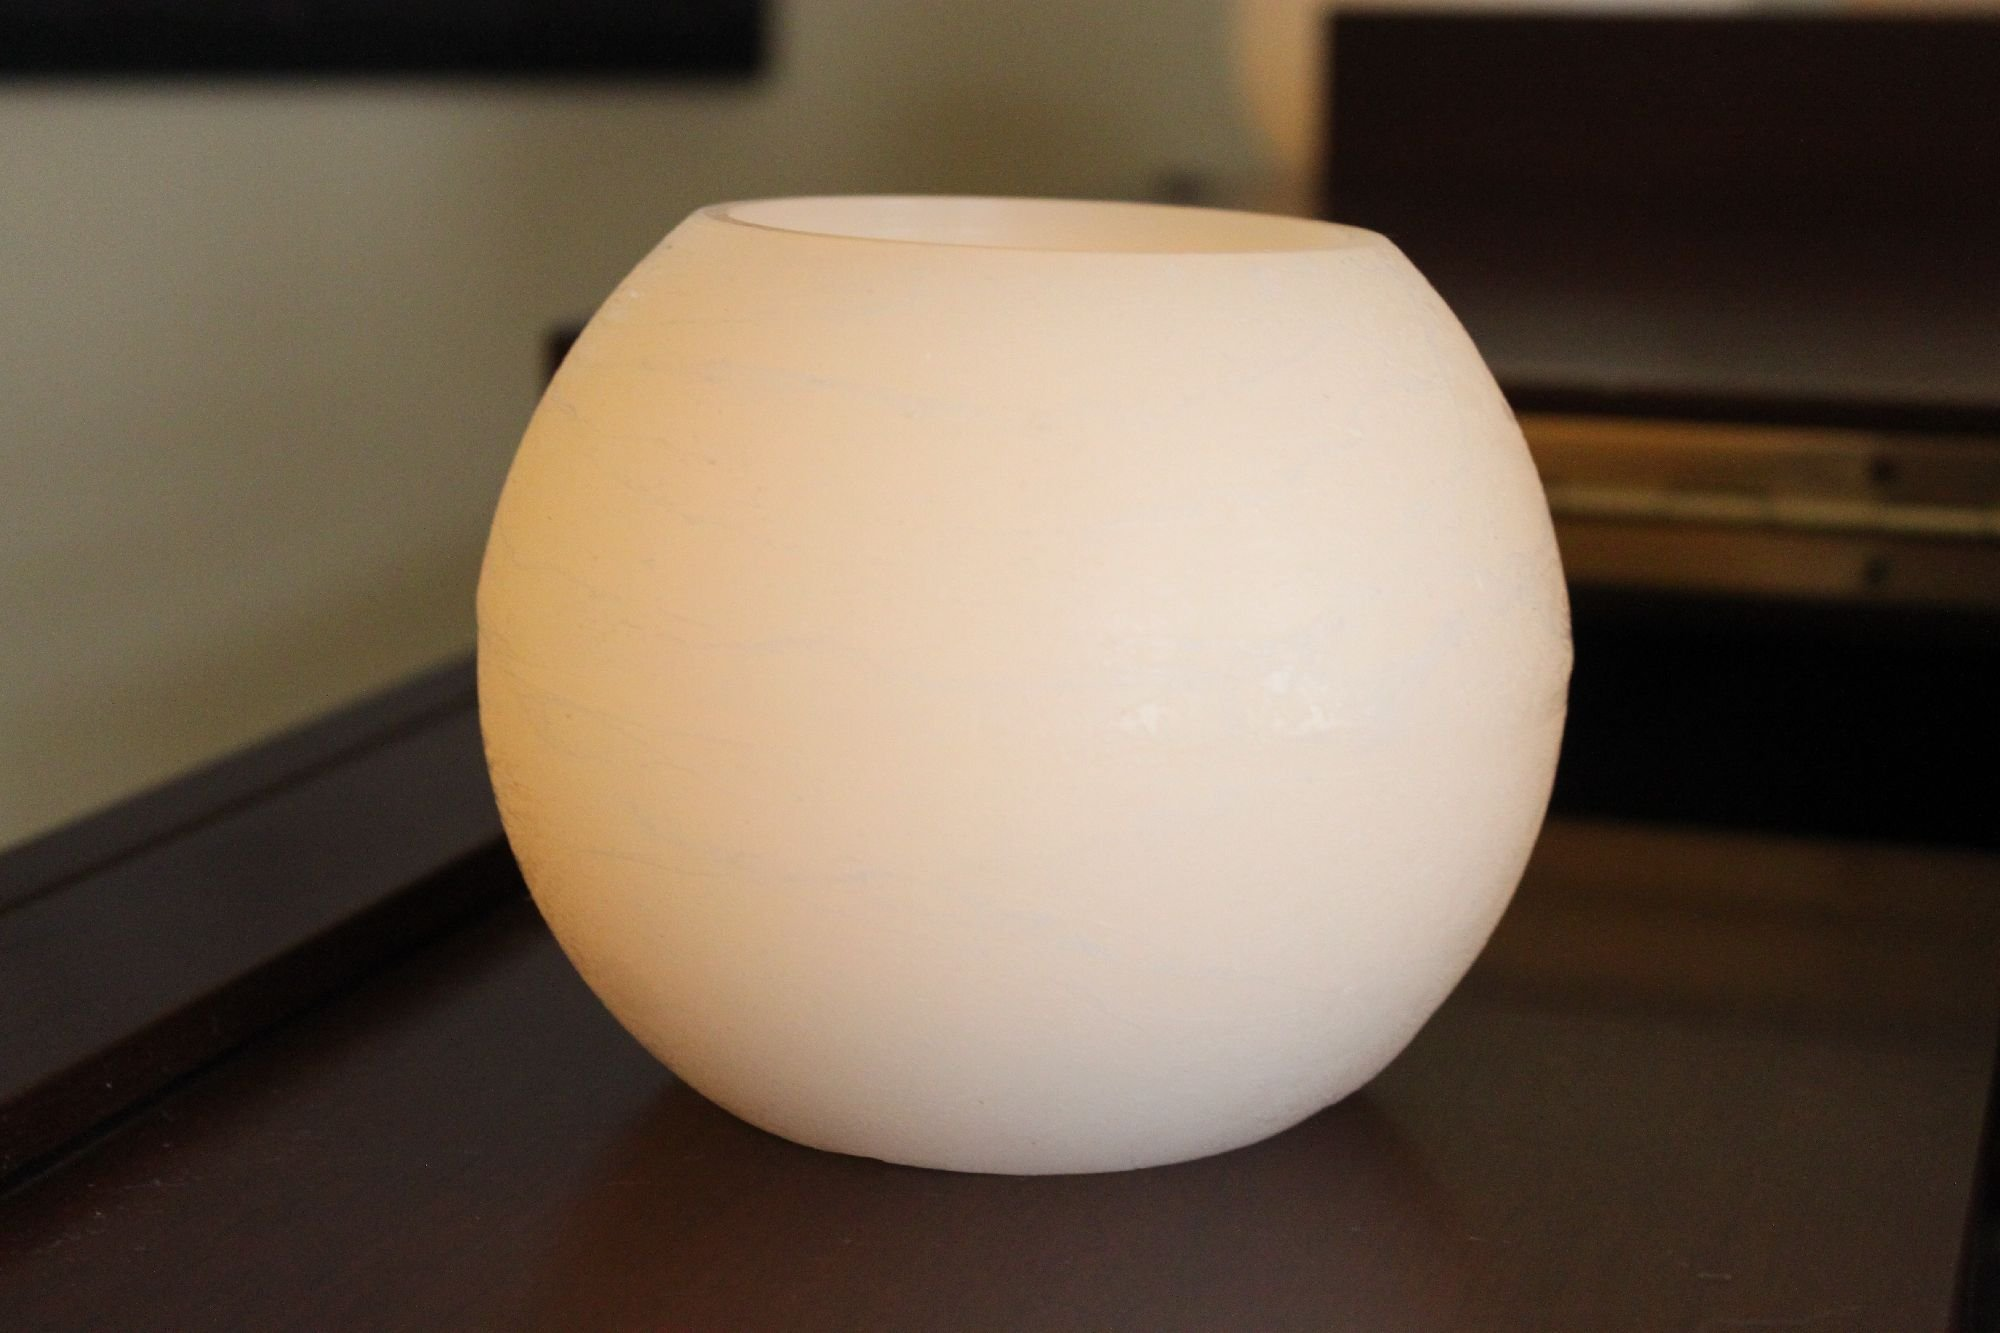 EcoGecko 87003 Wax Moon Sphere LED Flameless Candle with 5 Hour Timer